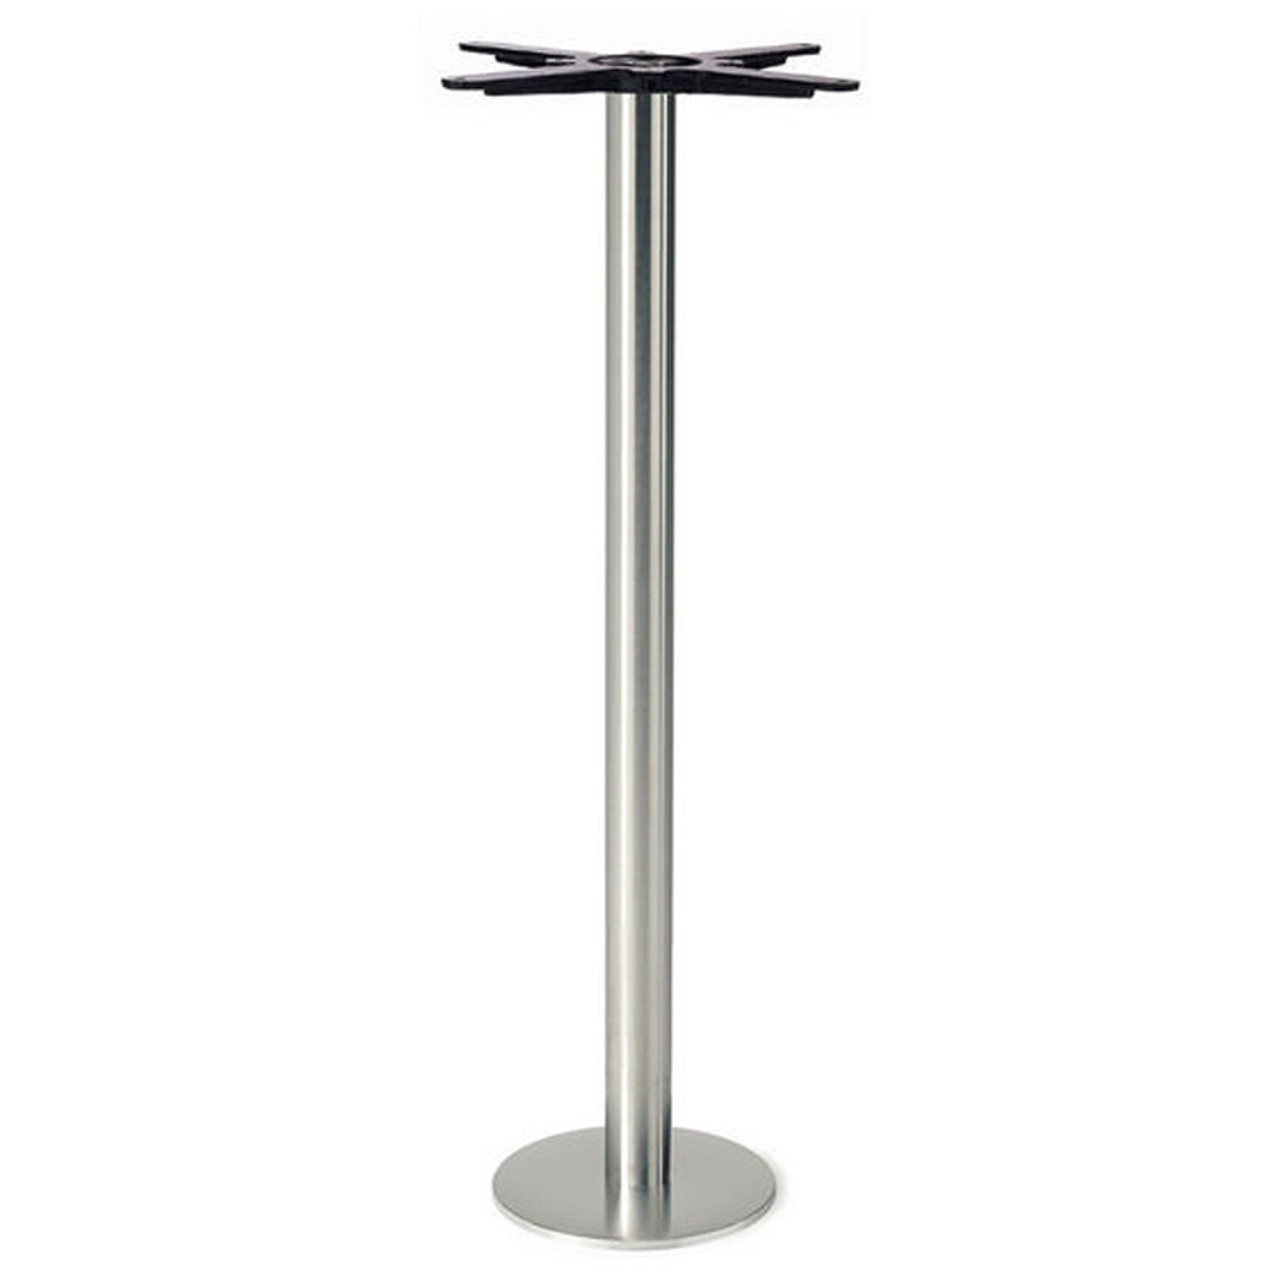 Round Pedestal Table Base Brushed Stainless Steel 40 1 8 Bar Height 8 Bolt Down Round Base 3 Diameter Steel Column Single Replacementtablelegs Com